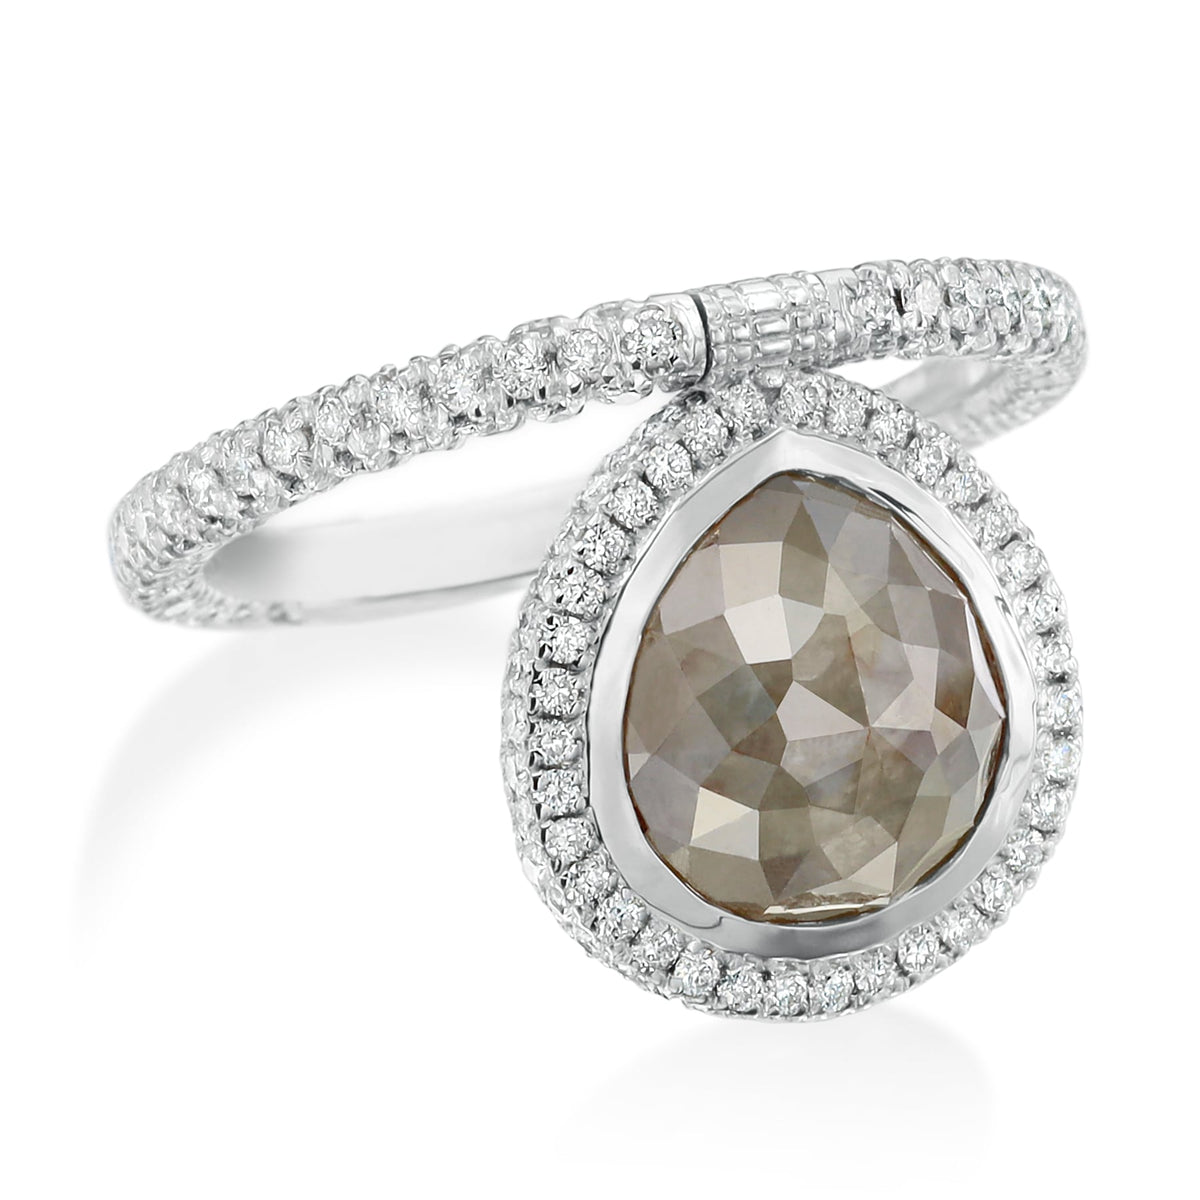 Medium Organic Gray Diamond Flip Ring with Pave Diamonds